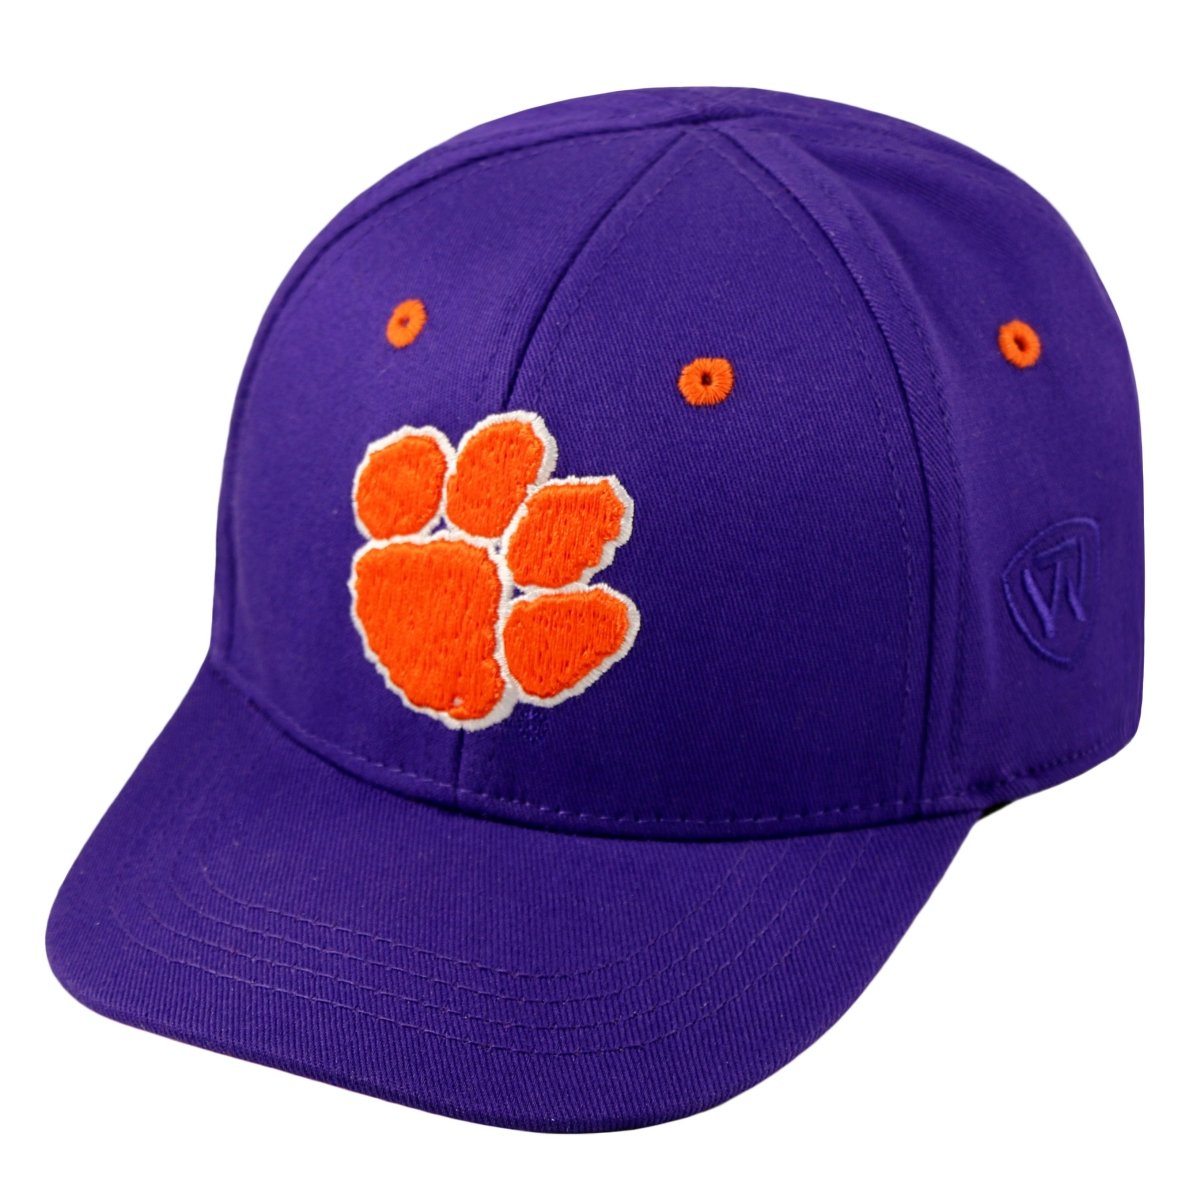 Top of the World Clemson Lil' Tiger Infant Hat - Mr. Knickerbocker